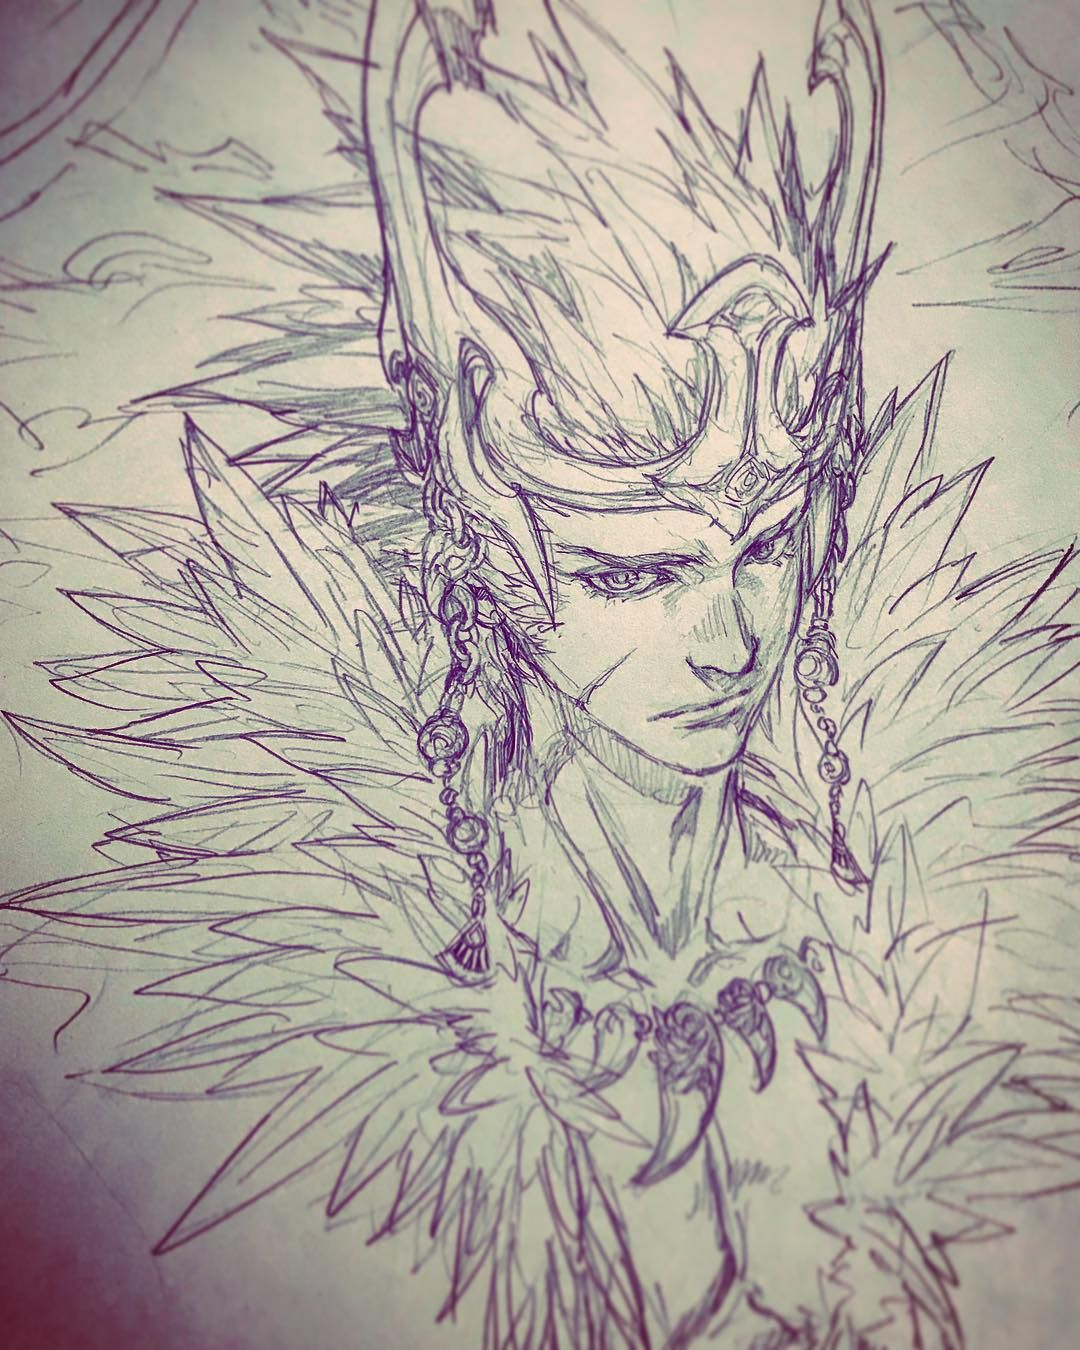 Awesome Character Design Incredible Artworks By Ozo Stato Comment Belo Drawings Art Sketches Drawing Artwork